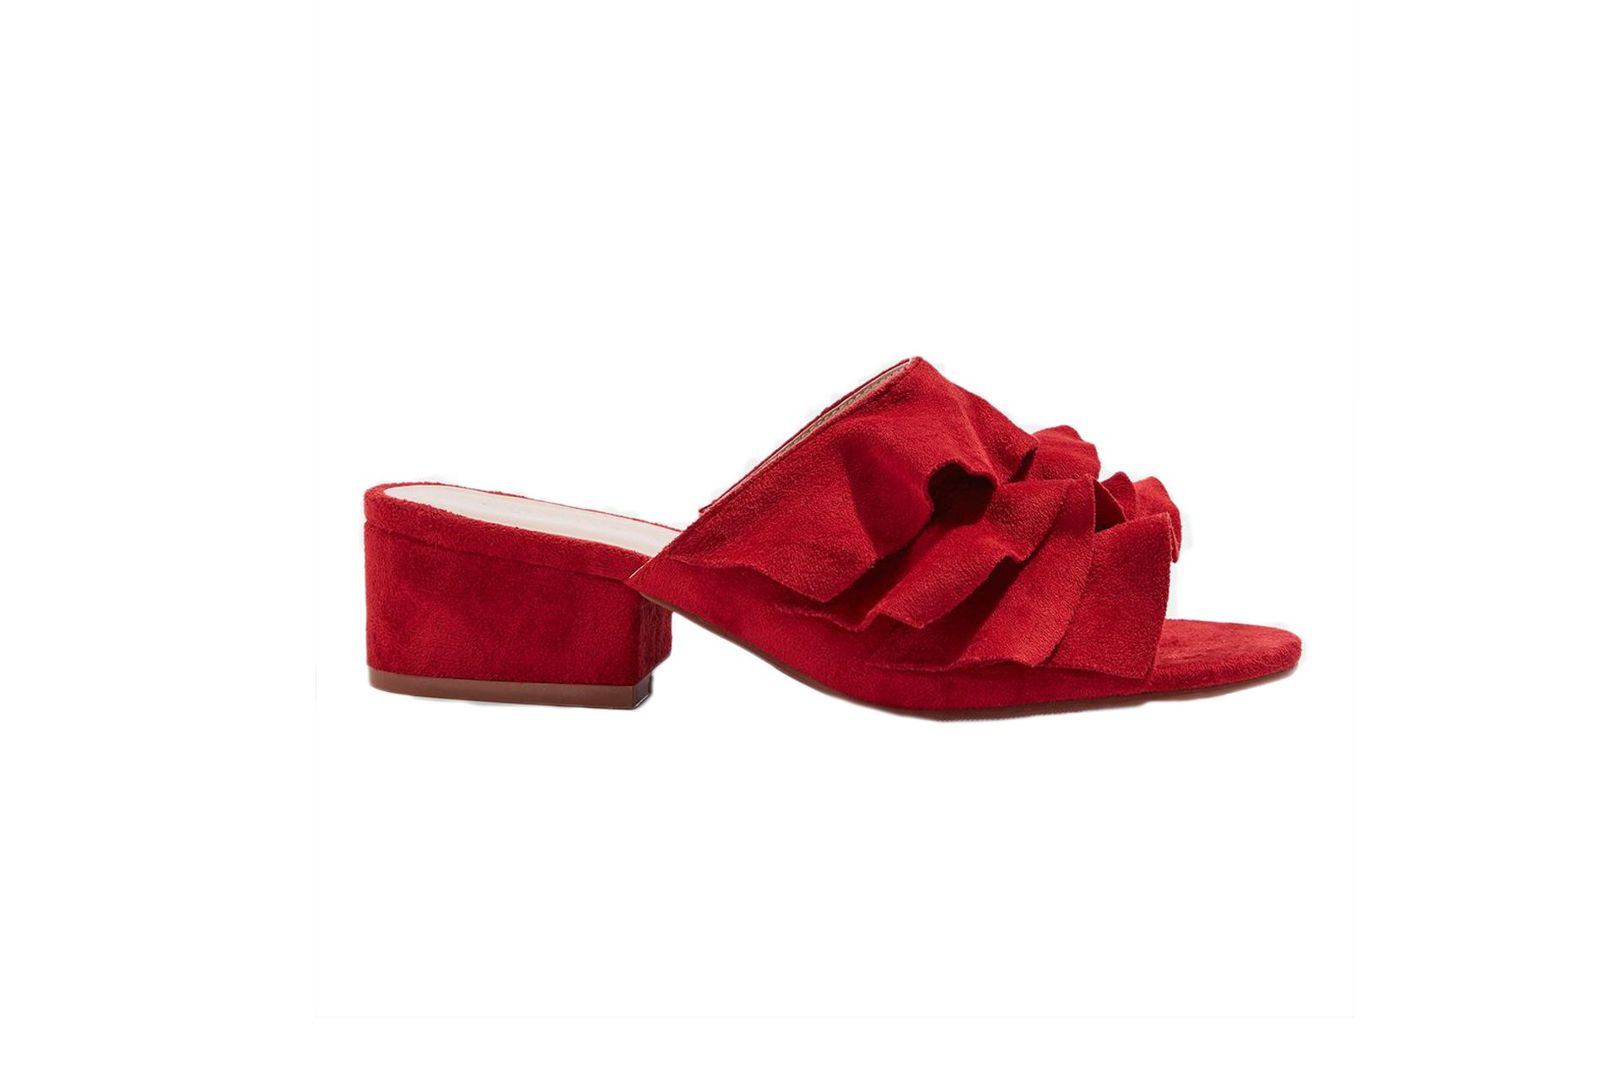 Worried/stressed/sad about #brexitday? These shoes will make your day a little better:  https://t.co/Ex65i7j8o9 https://t.co/vuPGvEw2w3